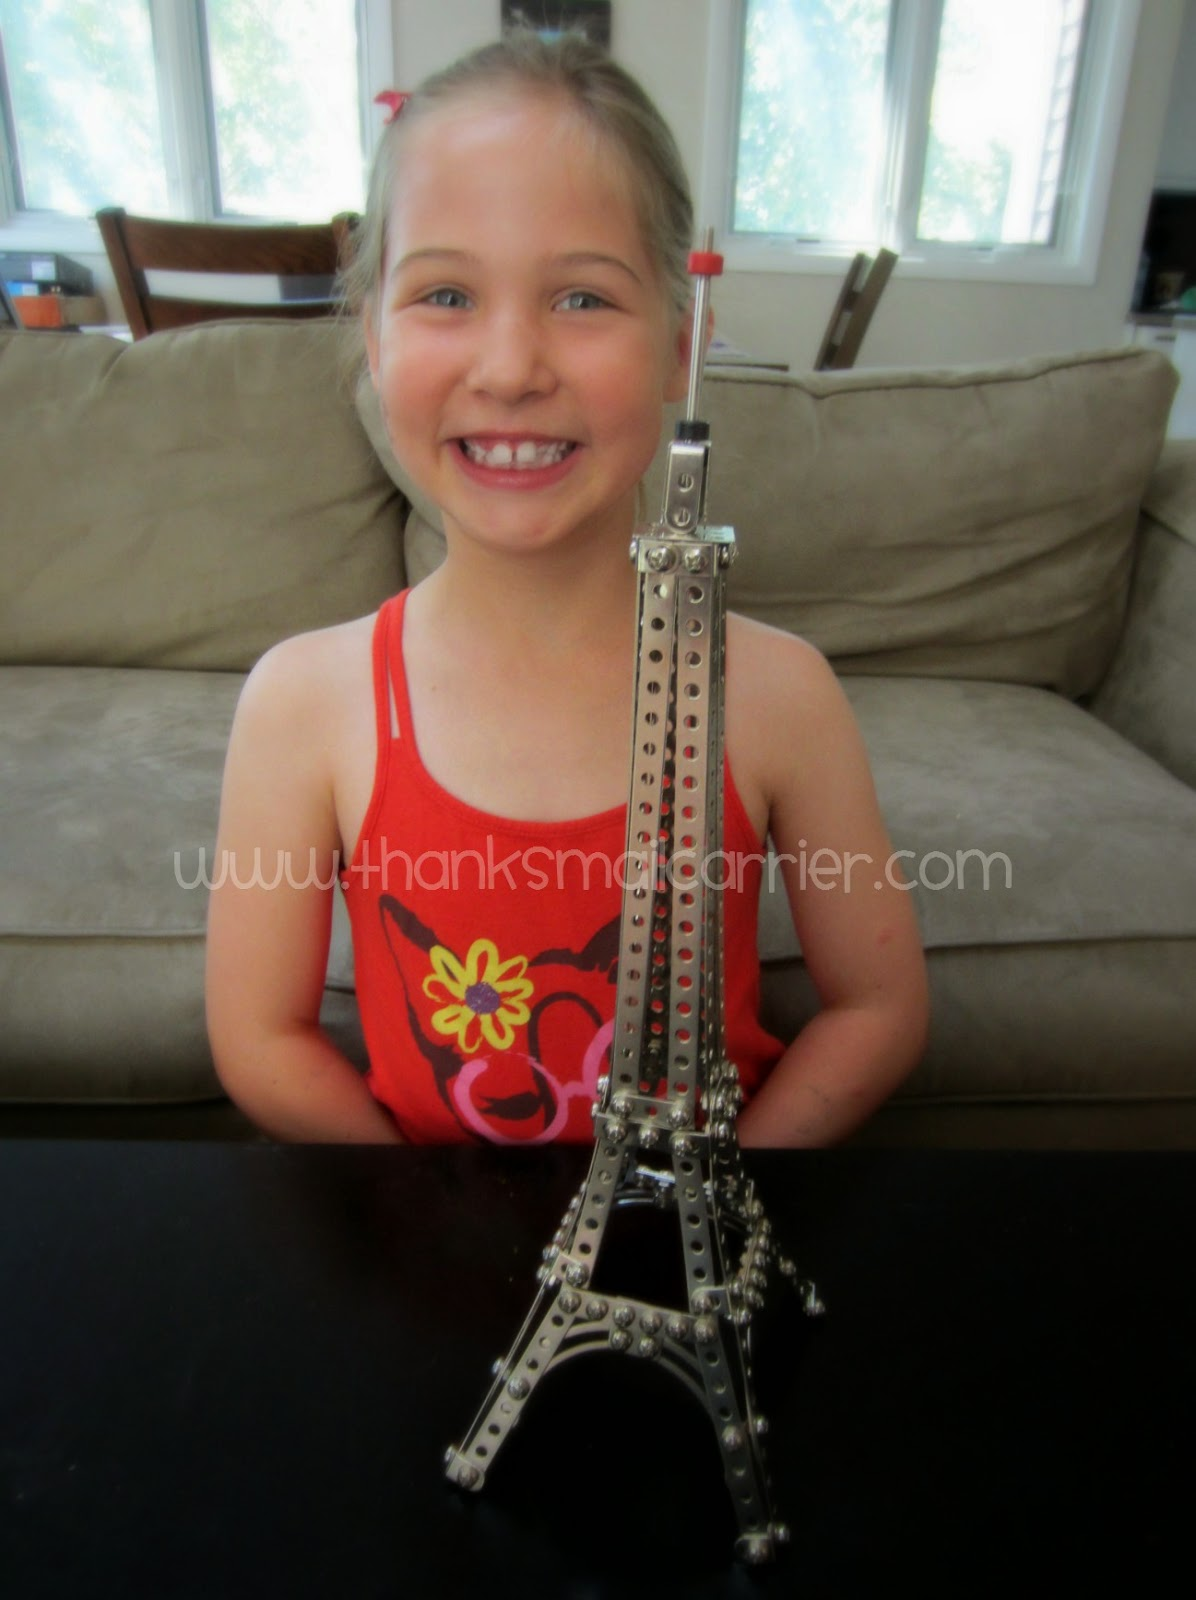 Eitech Eiffel Tower review